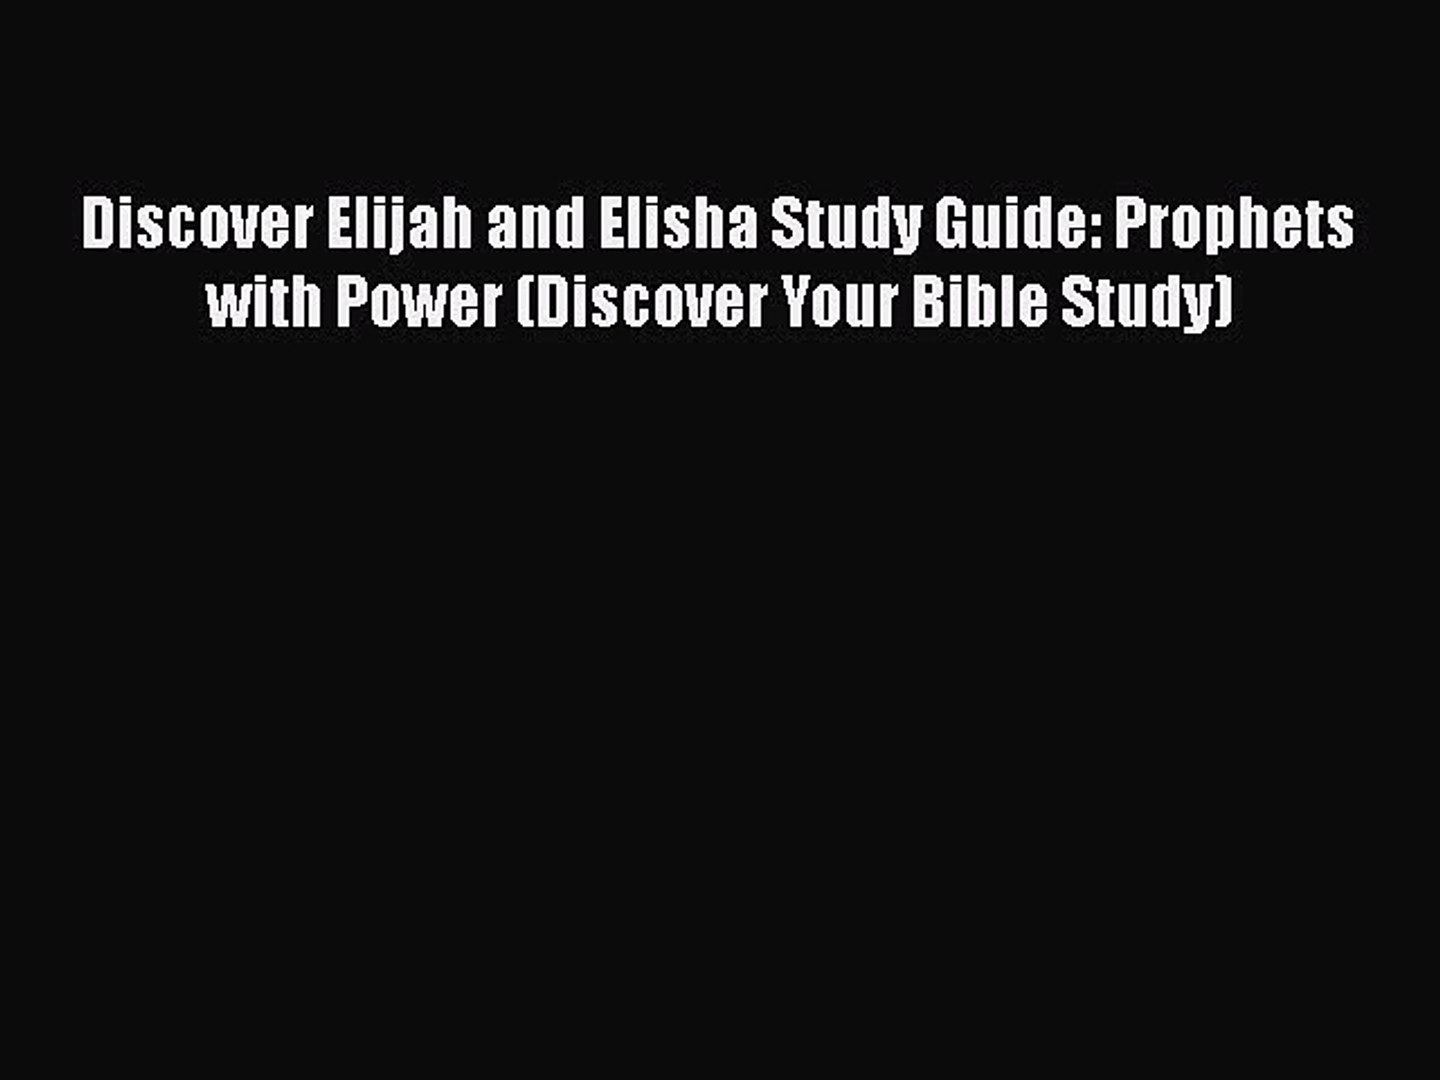 Read Discover Elijah and Elisha Study Guide: Prophets with